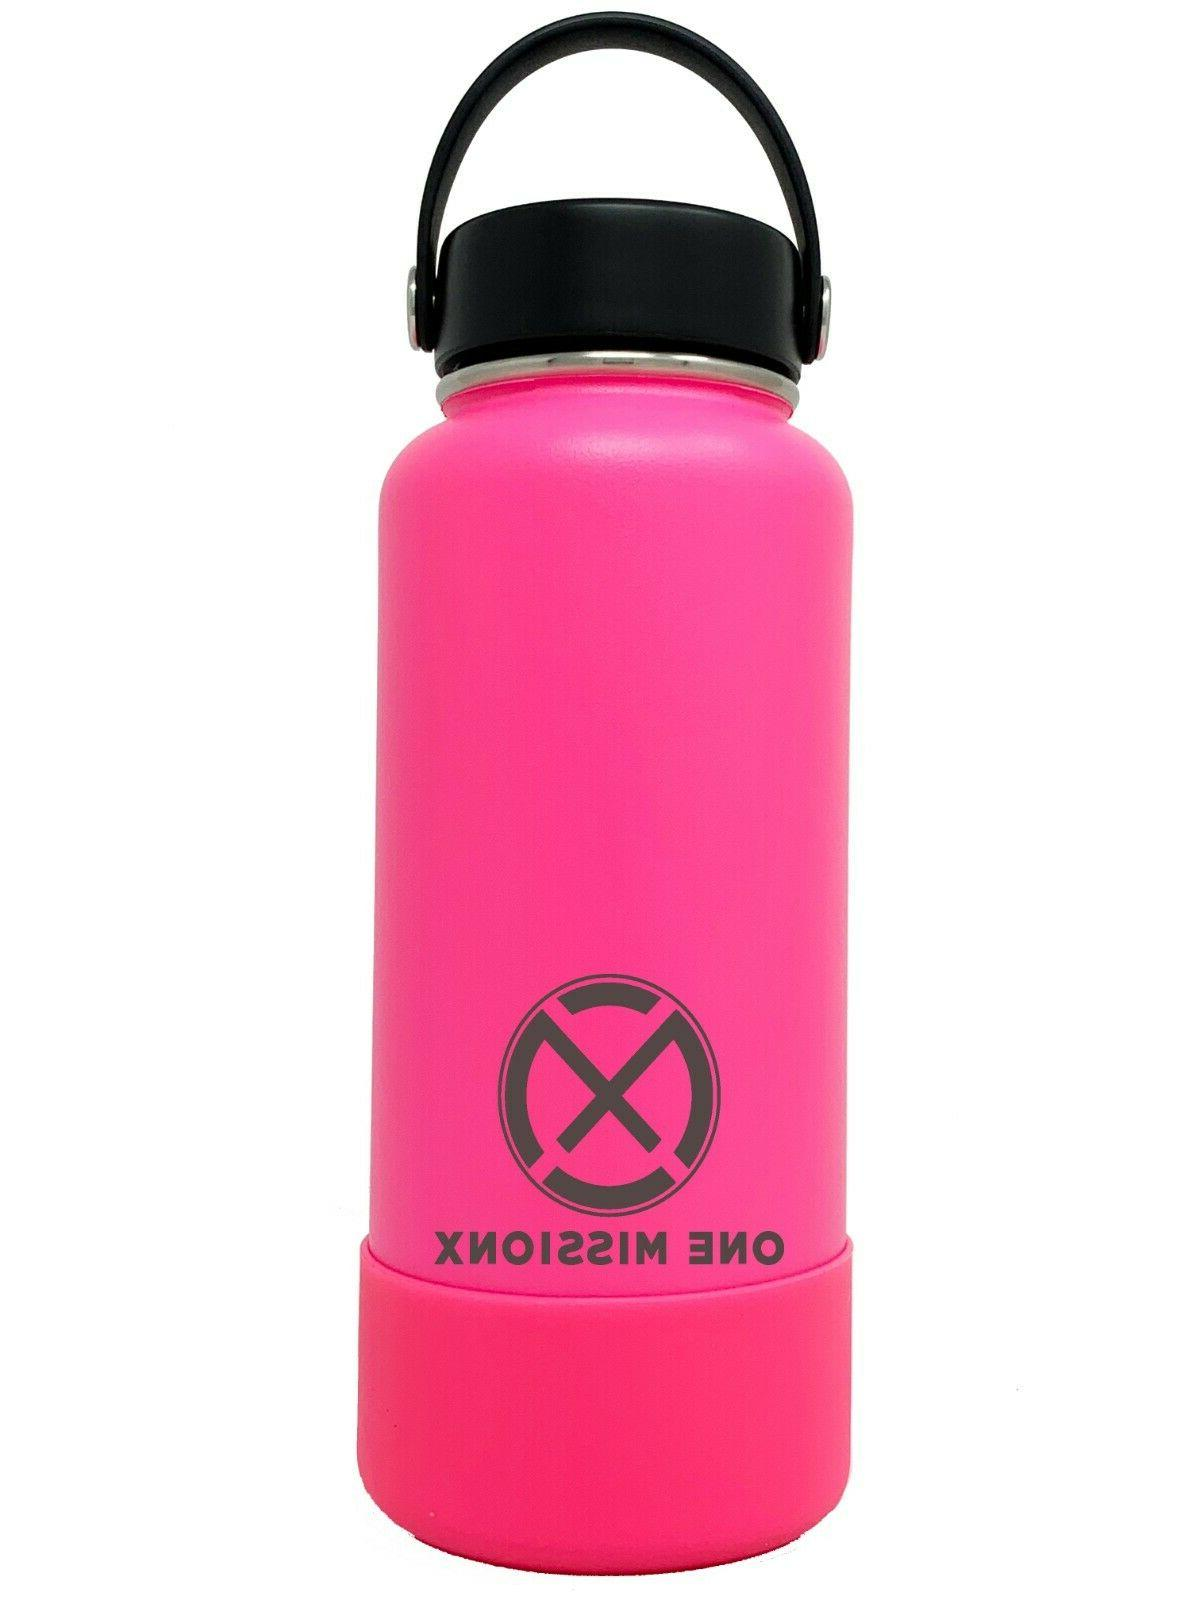 Silicone Sleeve Boot For HYDRO FLASK 12-40oz Water